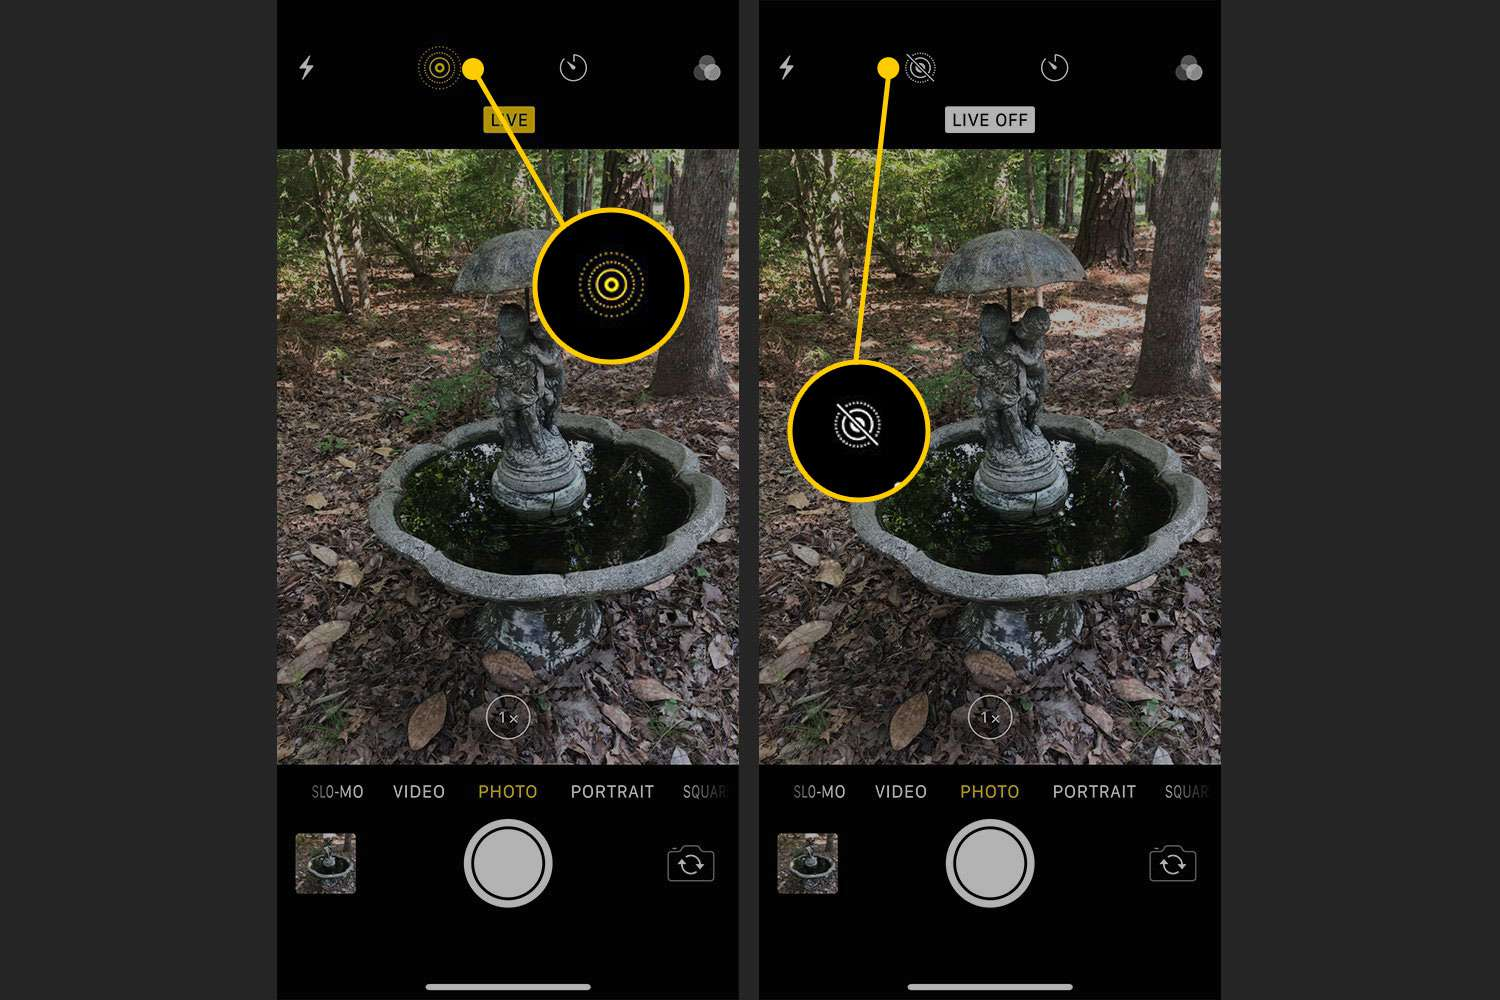 iOS Camera app with the Live Photo indicator highlighted